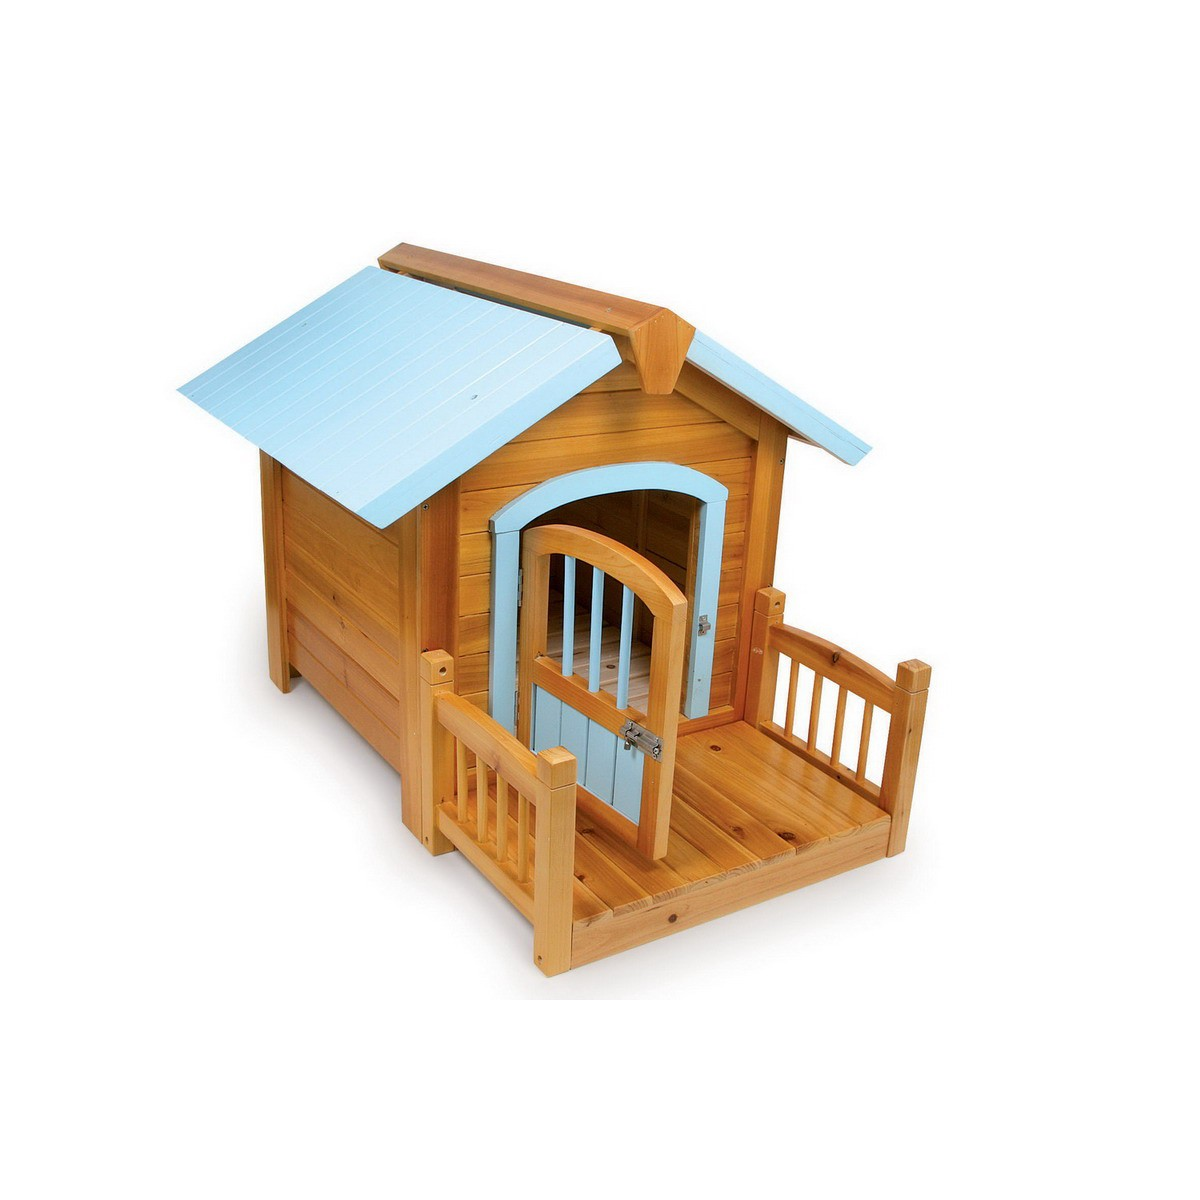 spielhaus f r tiere aus holz von small foot g nstig bei mariposa toys kaufen. Black Bedroom Furniture Sets. Home Design Ideas